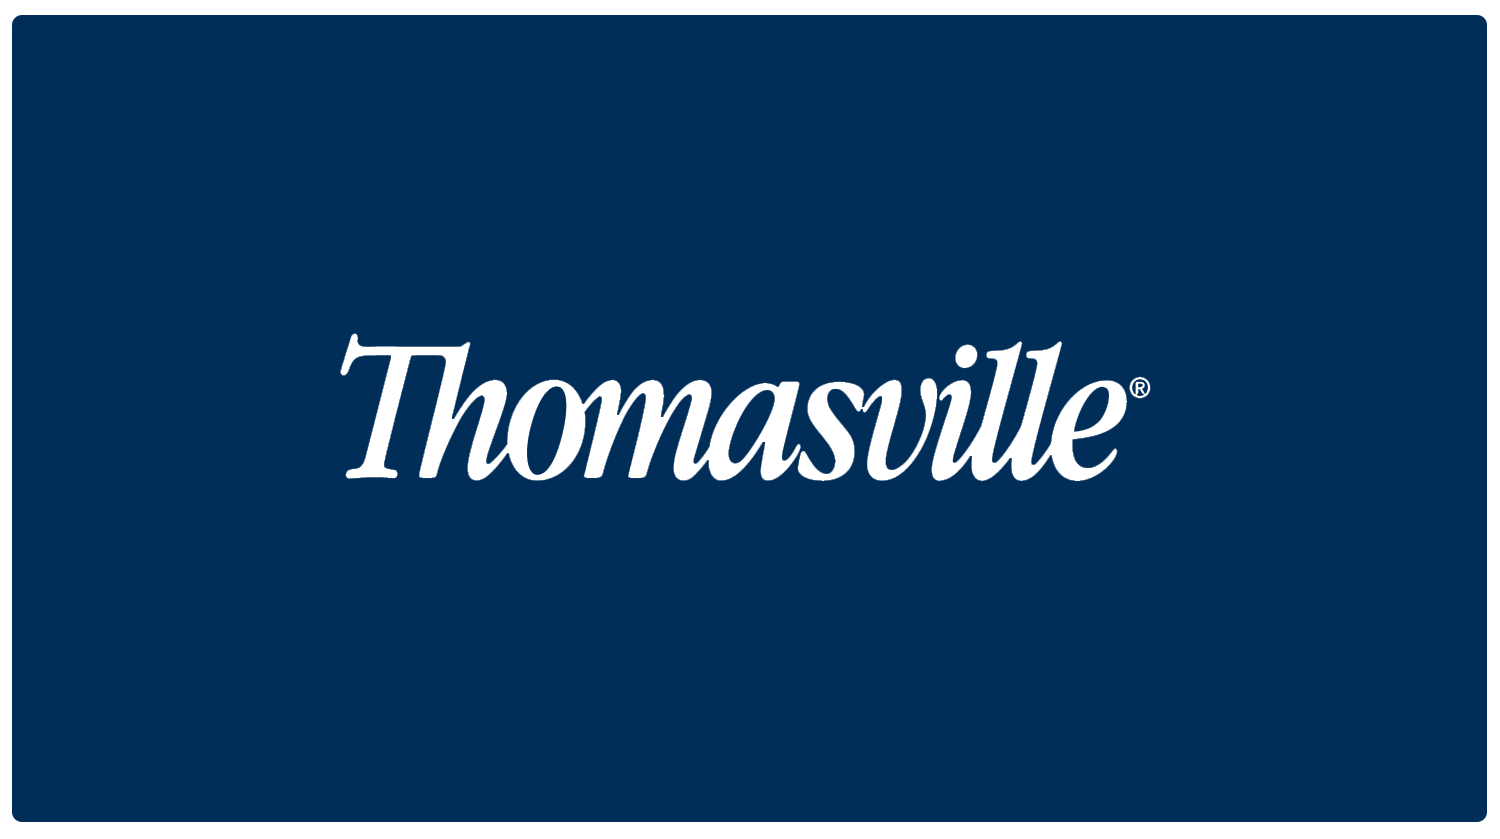 thomasville.png